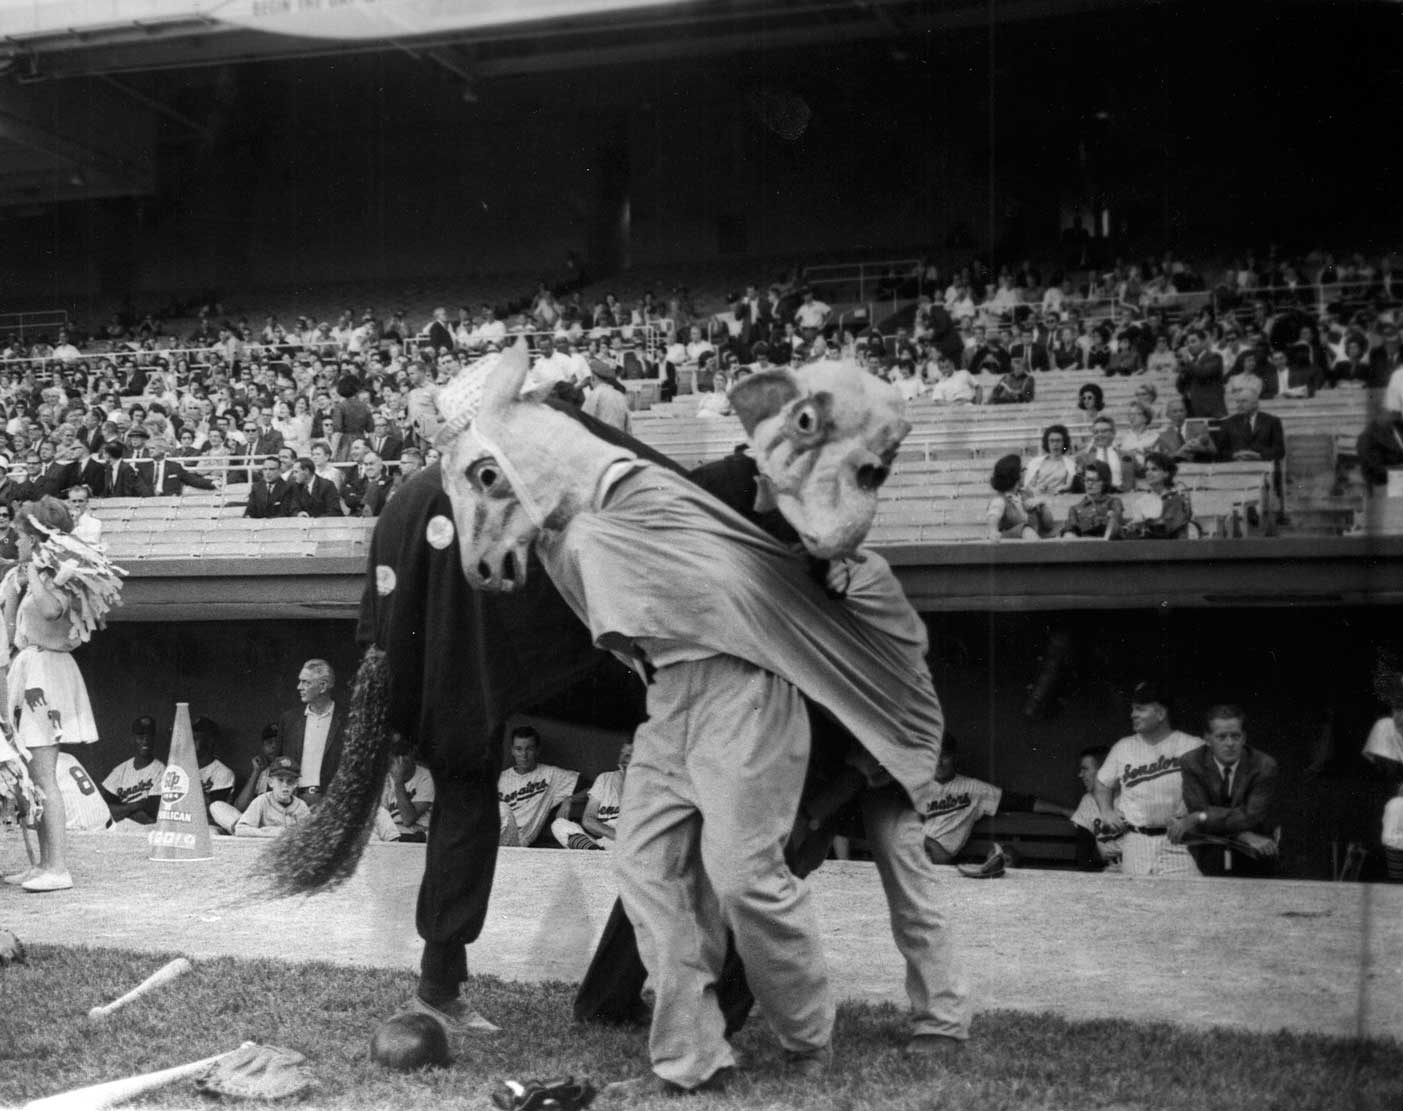 """The mascots for the Republicans, an elephant, and the Democrats, a donkey, have a """"fight"""" during the Congressional Baseball Game of 1964 in Washington."""